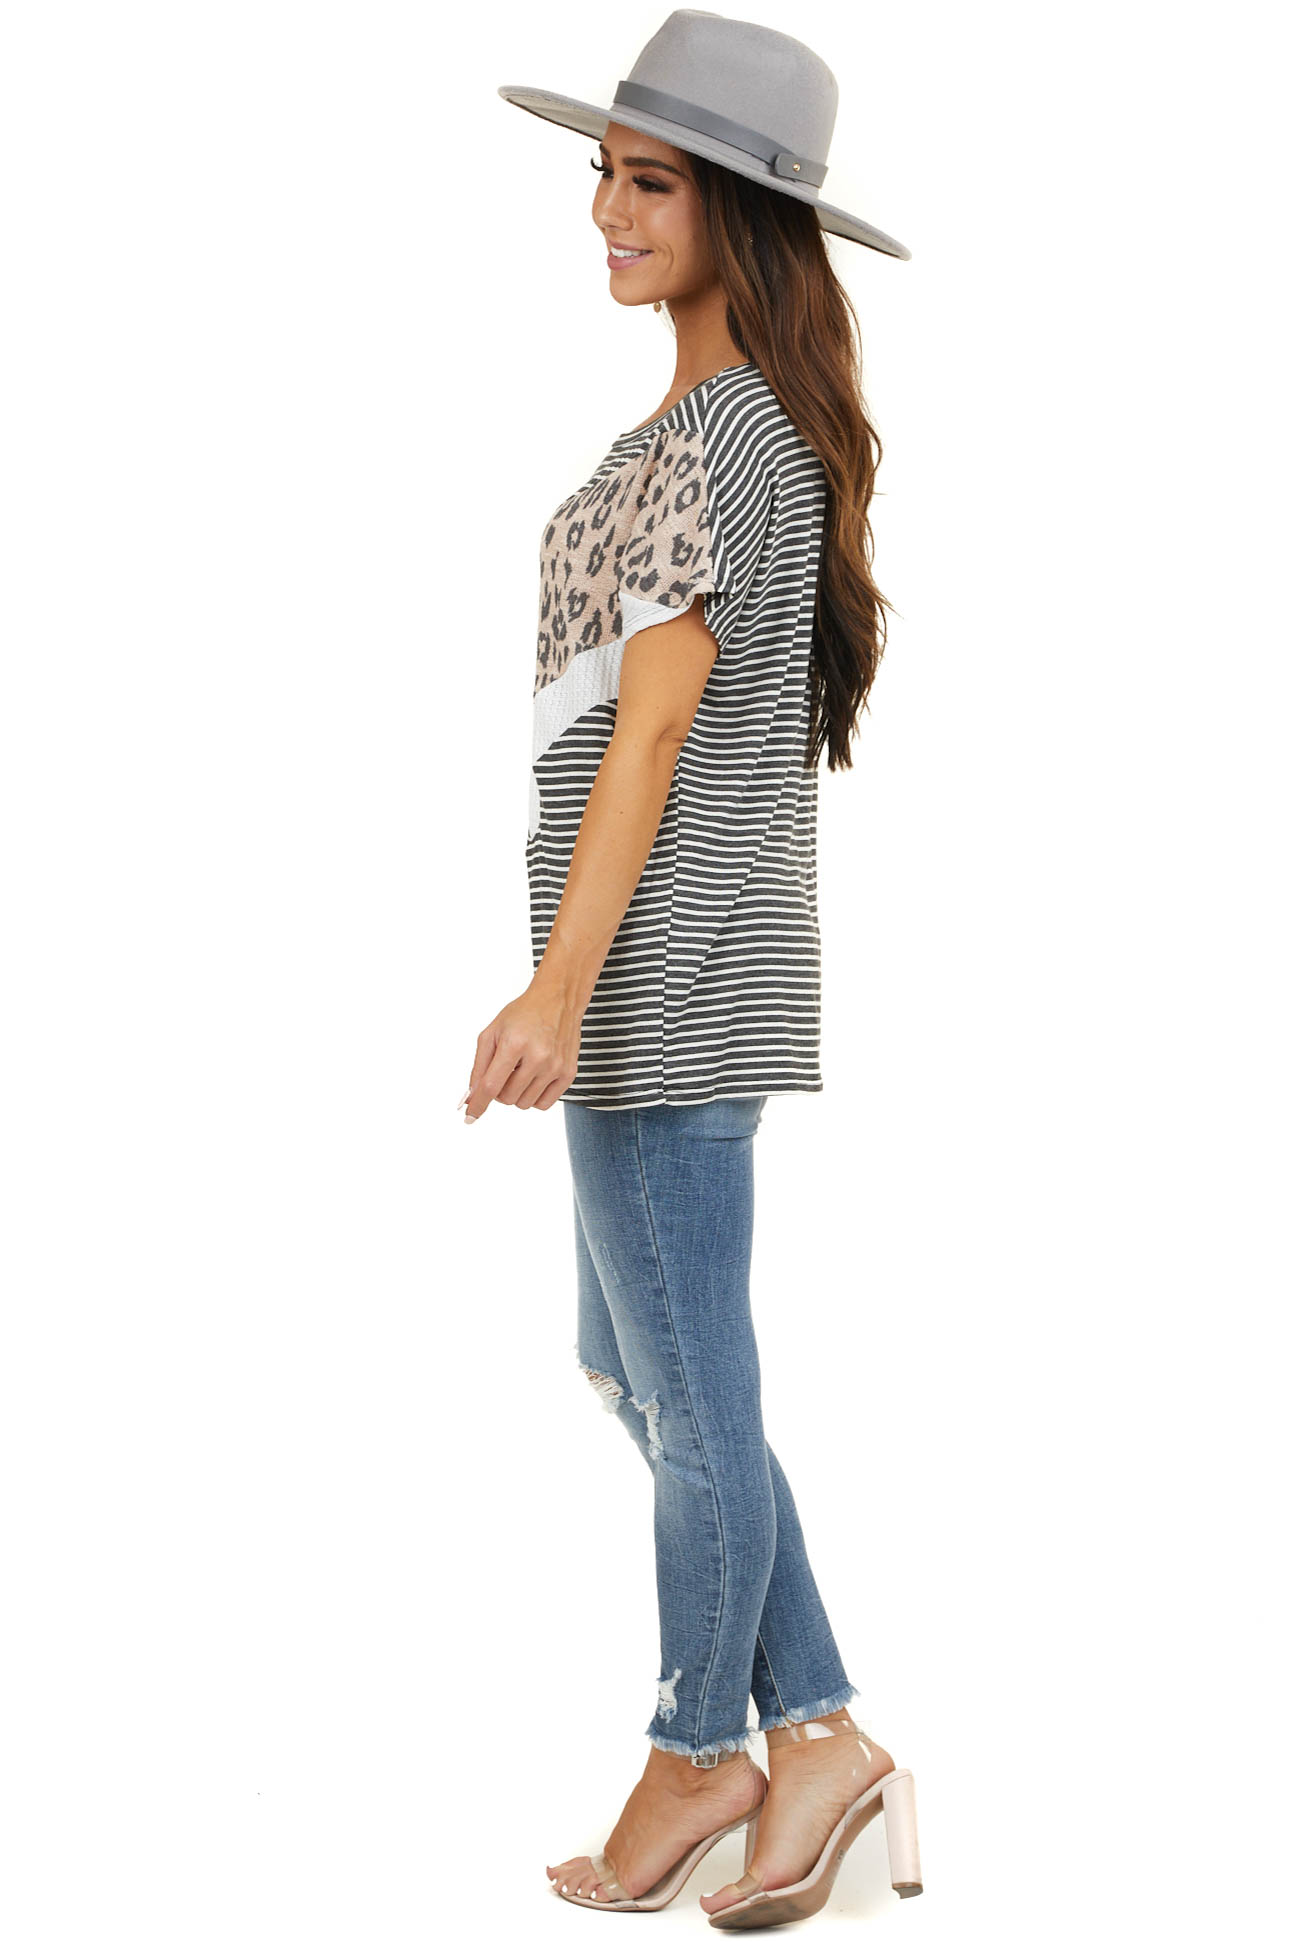 Charcoal Striped Multiprint Knit Top with Chevron Contrast